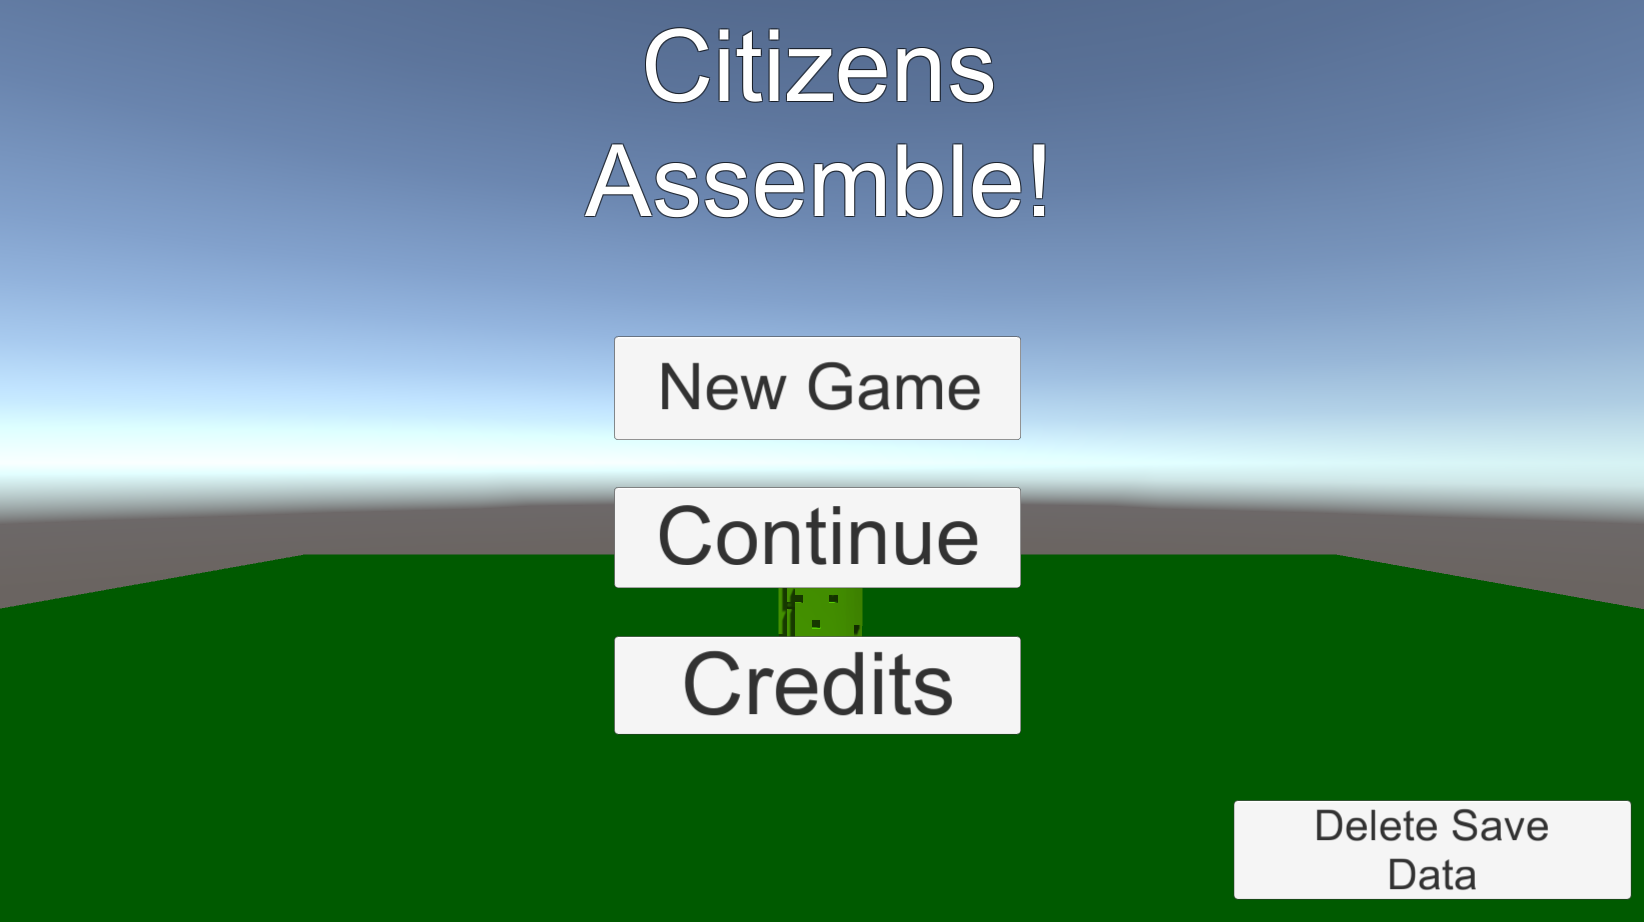 Citizens Assemble!